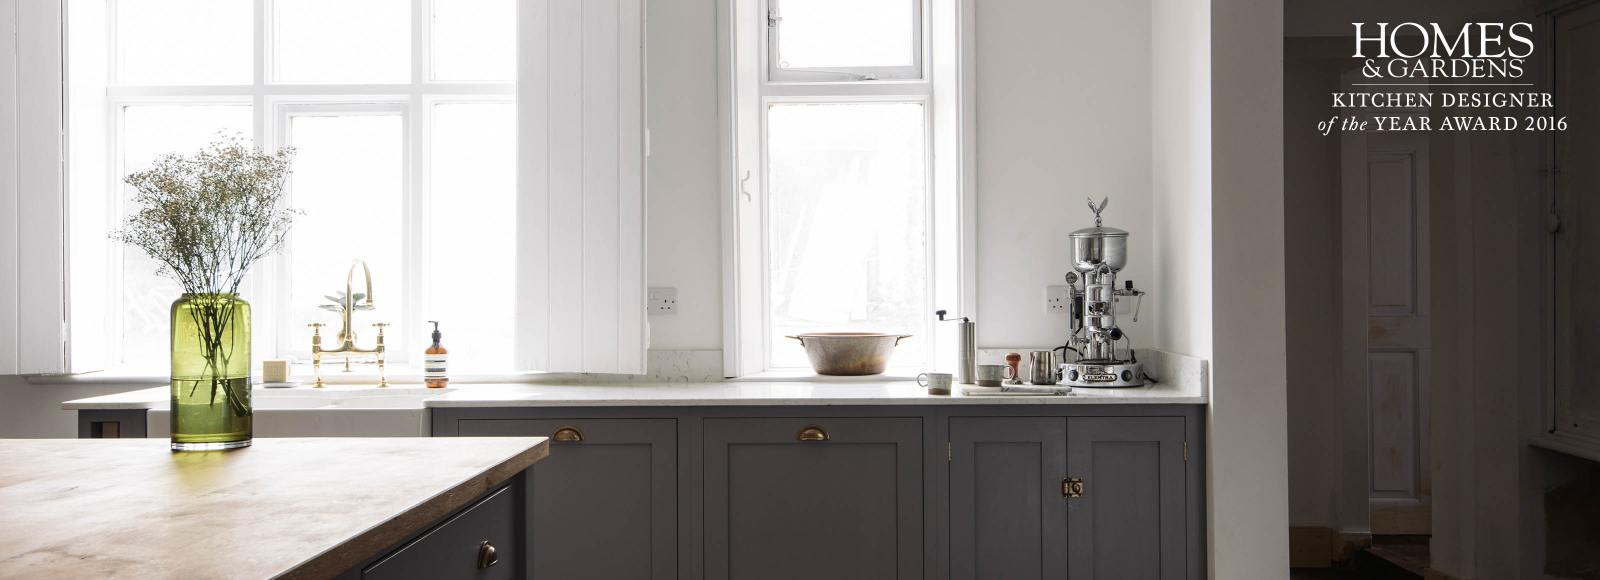 Bespoke Kitchens, Bathrooms and Interiors by deVOL photo 5